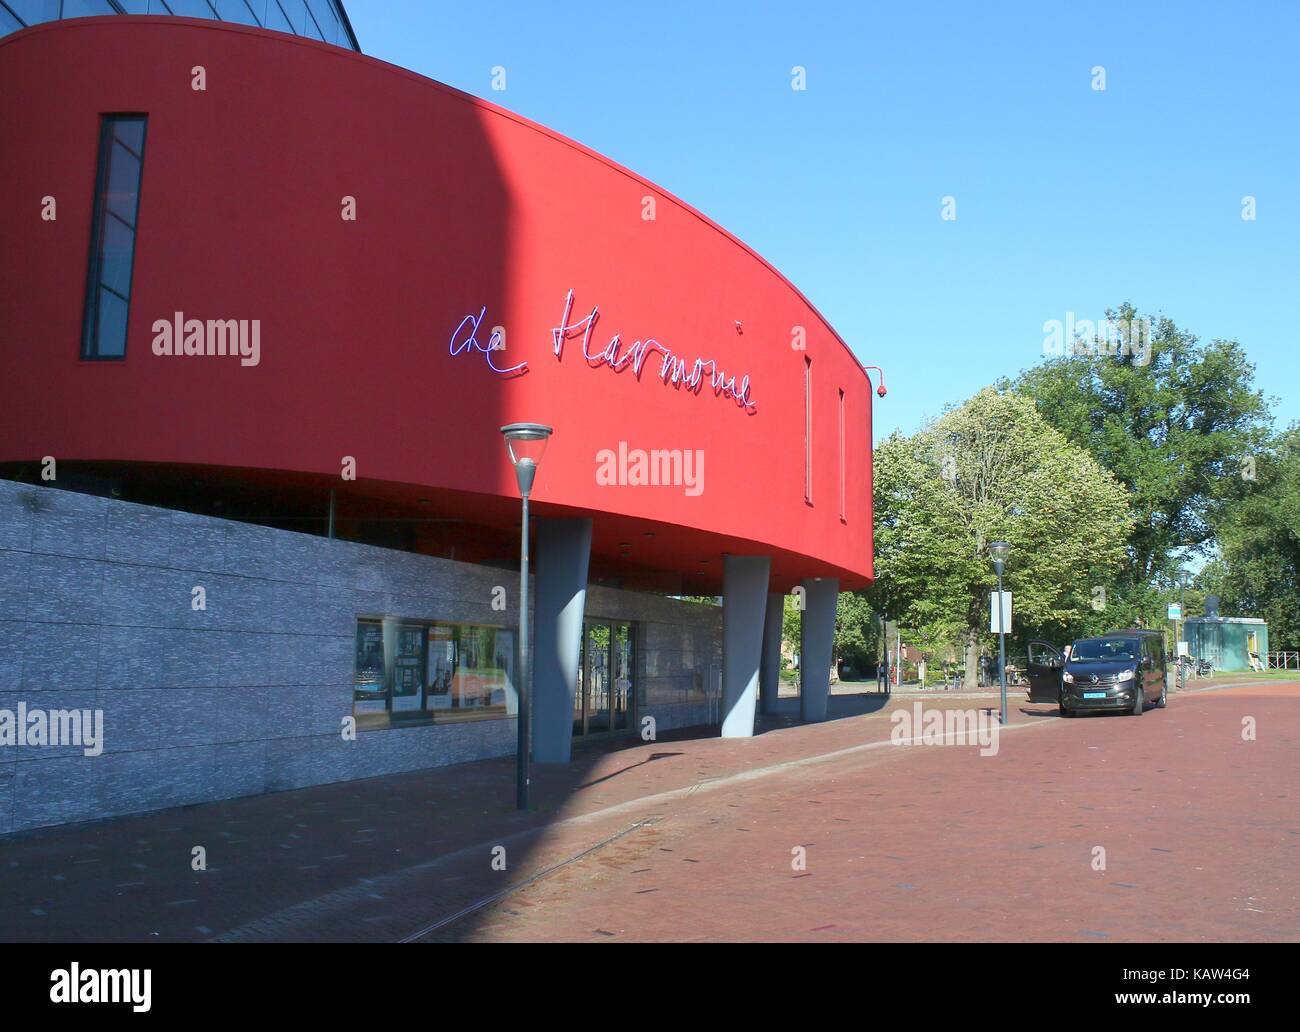 'De Harmonie', large concert-hall and theater venue in Leeuwarden, capital of Friesland, The Netherlands. - Stock Image